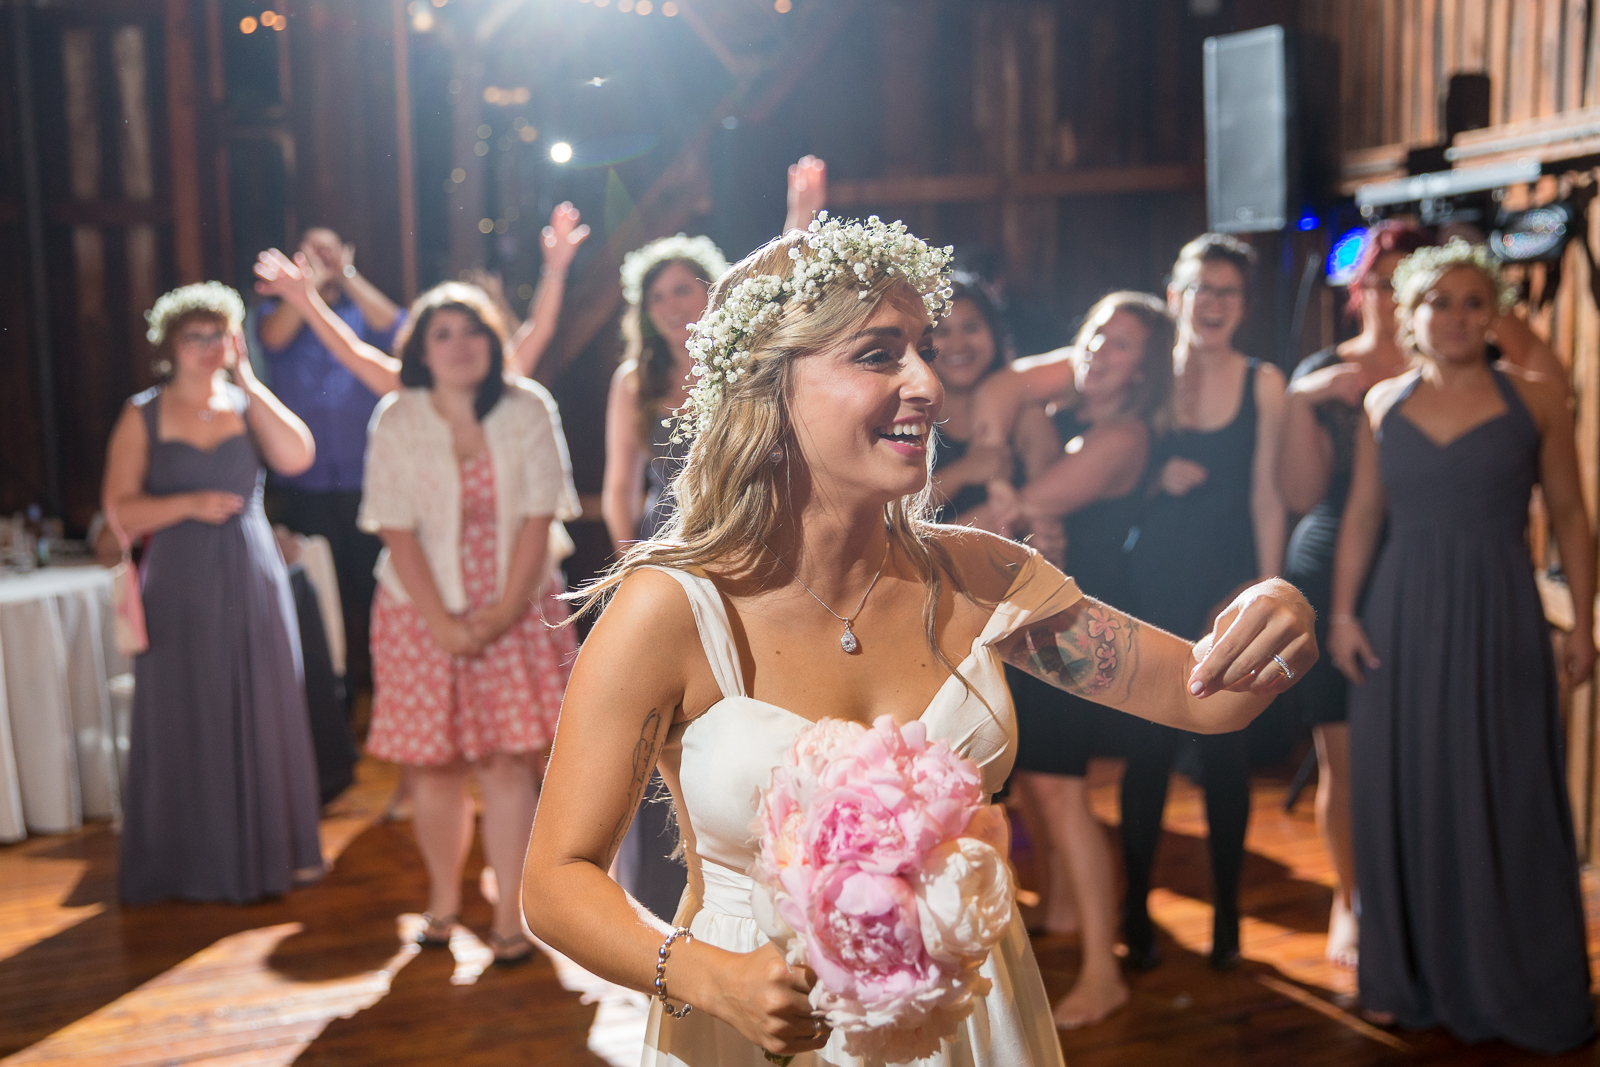 Four_Wings_Photography_Wedding_Red_Barn_at_Hampshire_College-58.jpg